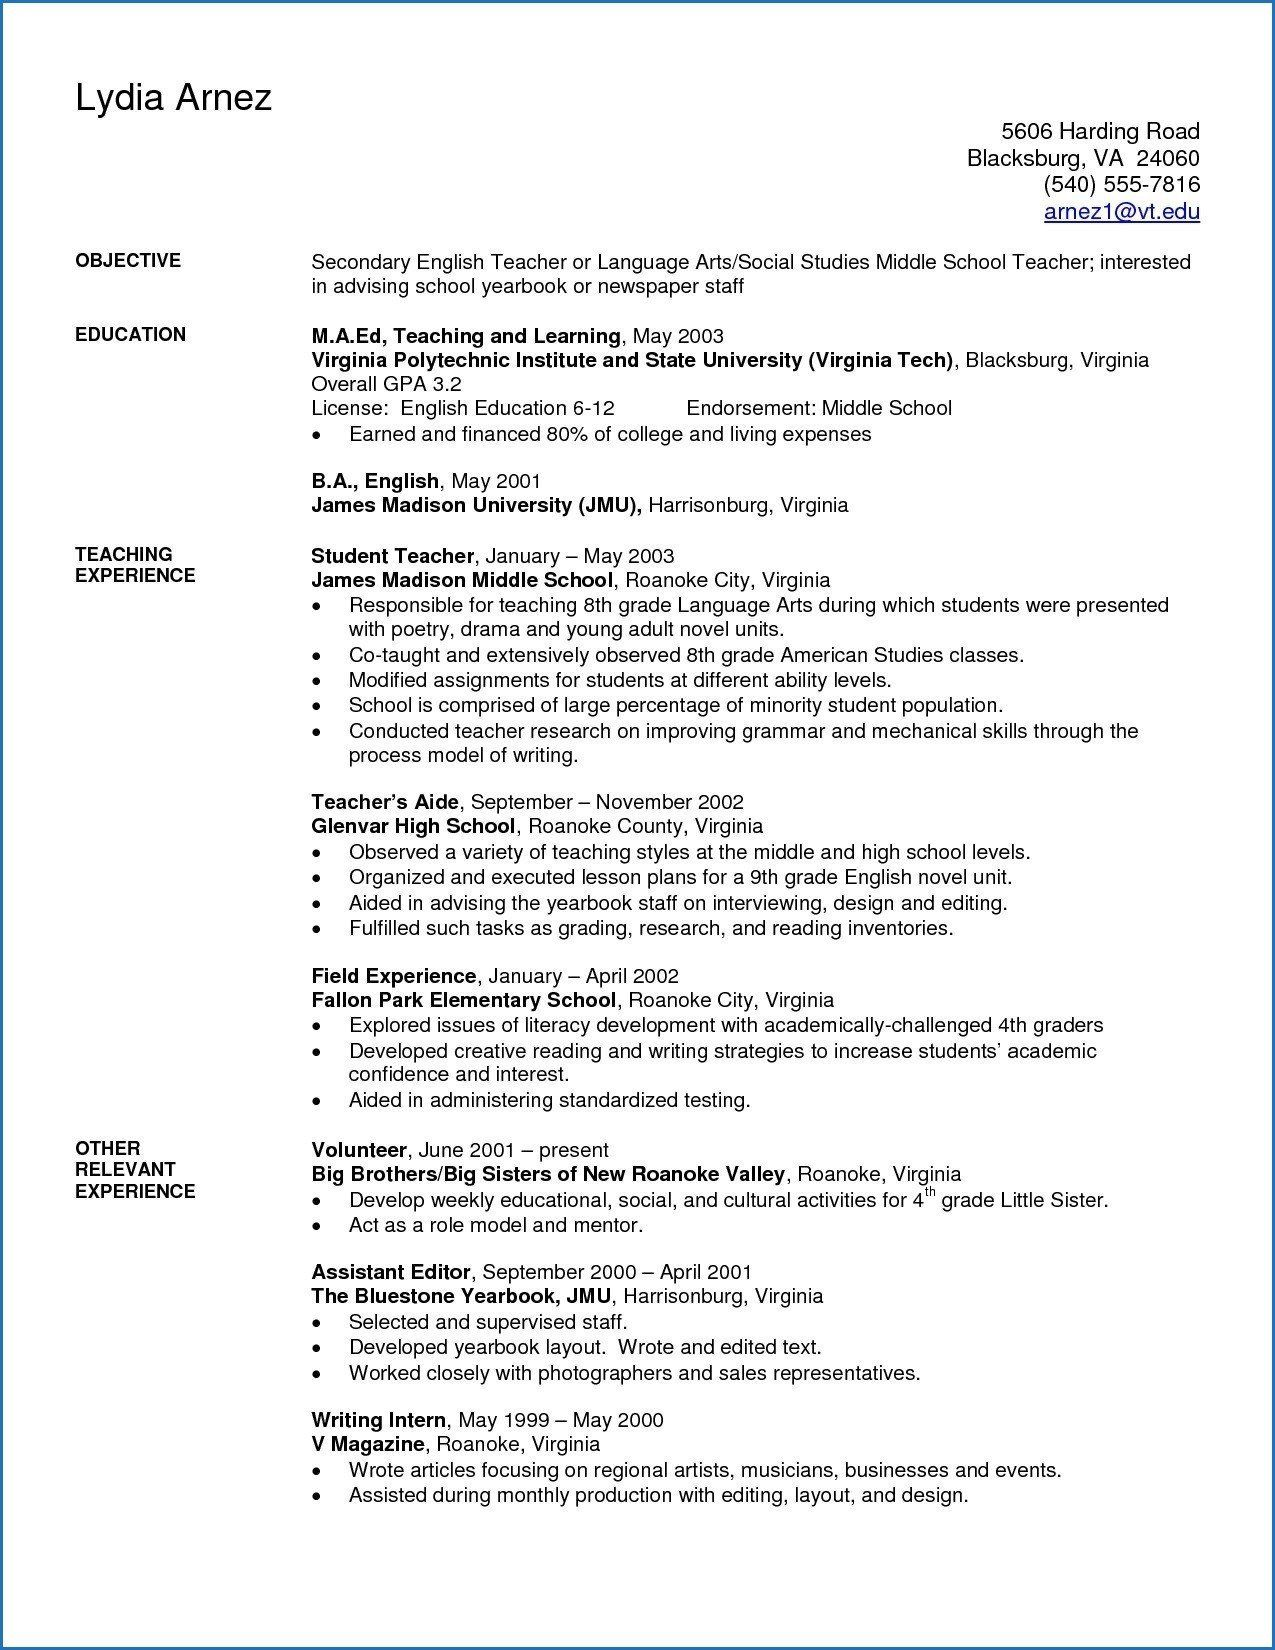 first year teacher resume lovely teachers karate do nrw examples elementary another word Resume First Year Teacher Resume